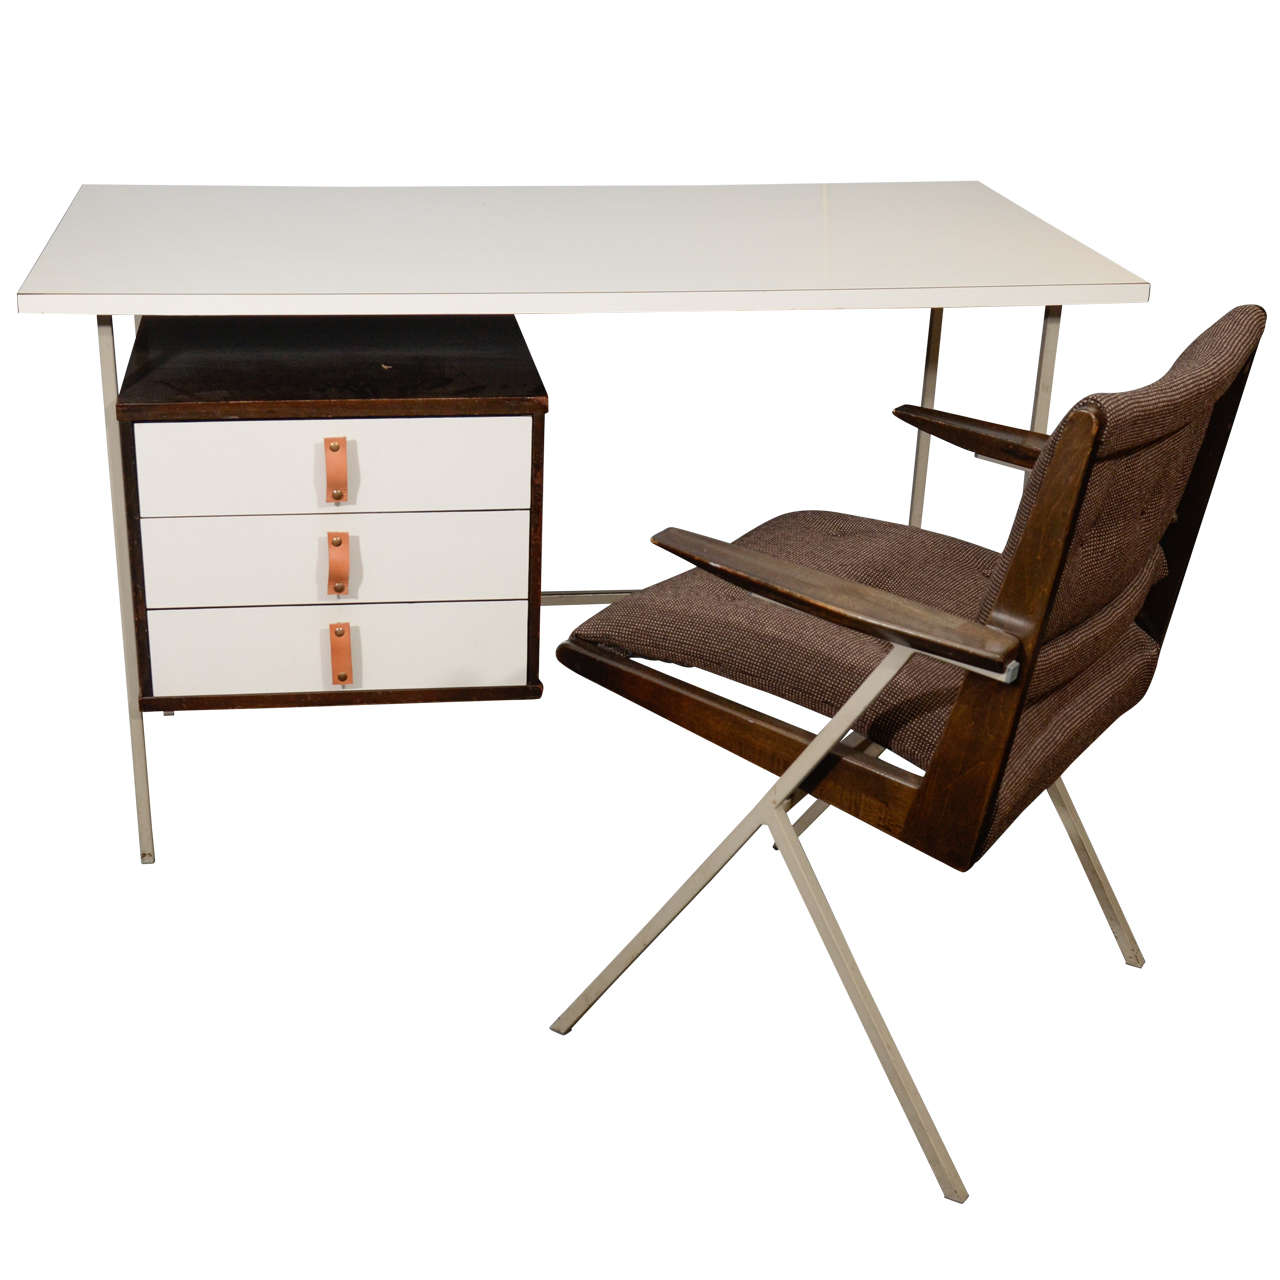 knoll and drake desk and chair at stdibs - knoll and drake desk and chair